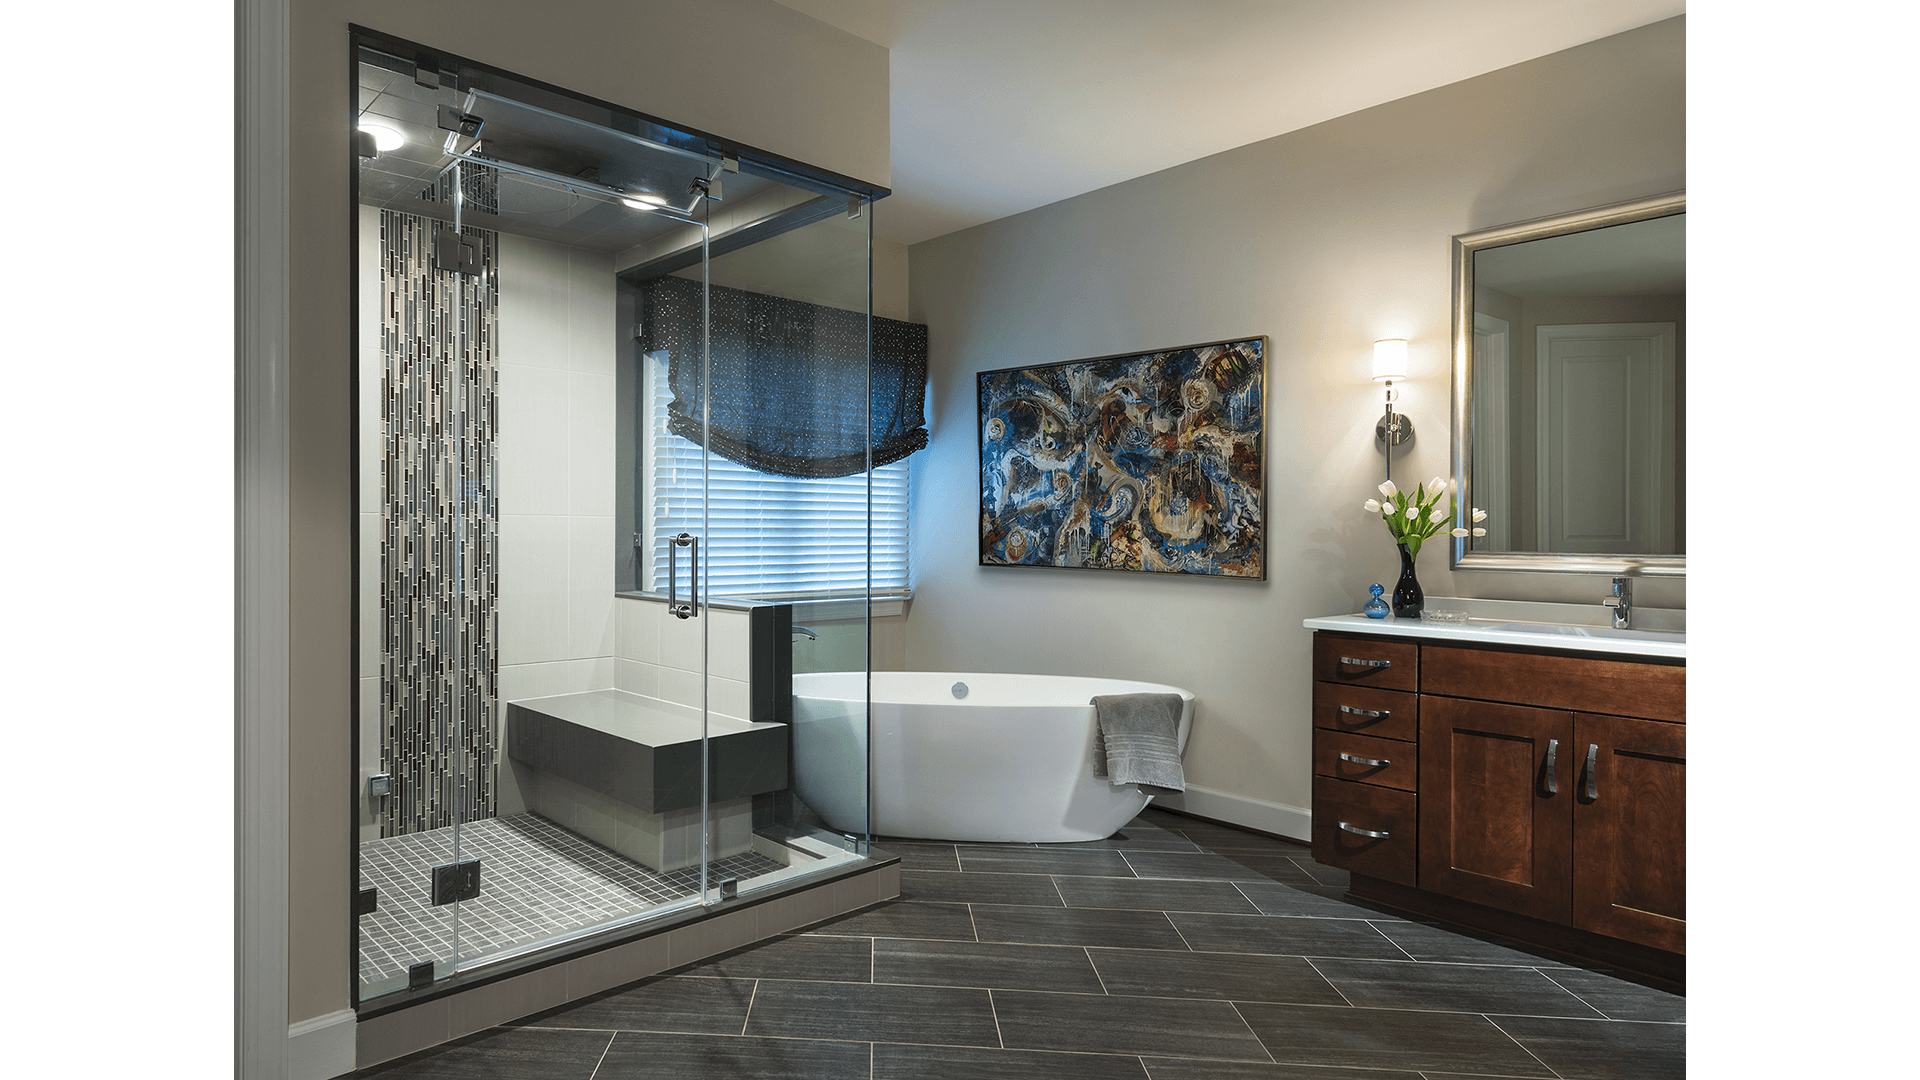 The Owner's Bath with Steam Shower in a Gulick | One home on Innsbruck Avenue. © Hoachlander-Davis Photography. All Rights Reserved. Used with Permission.